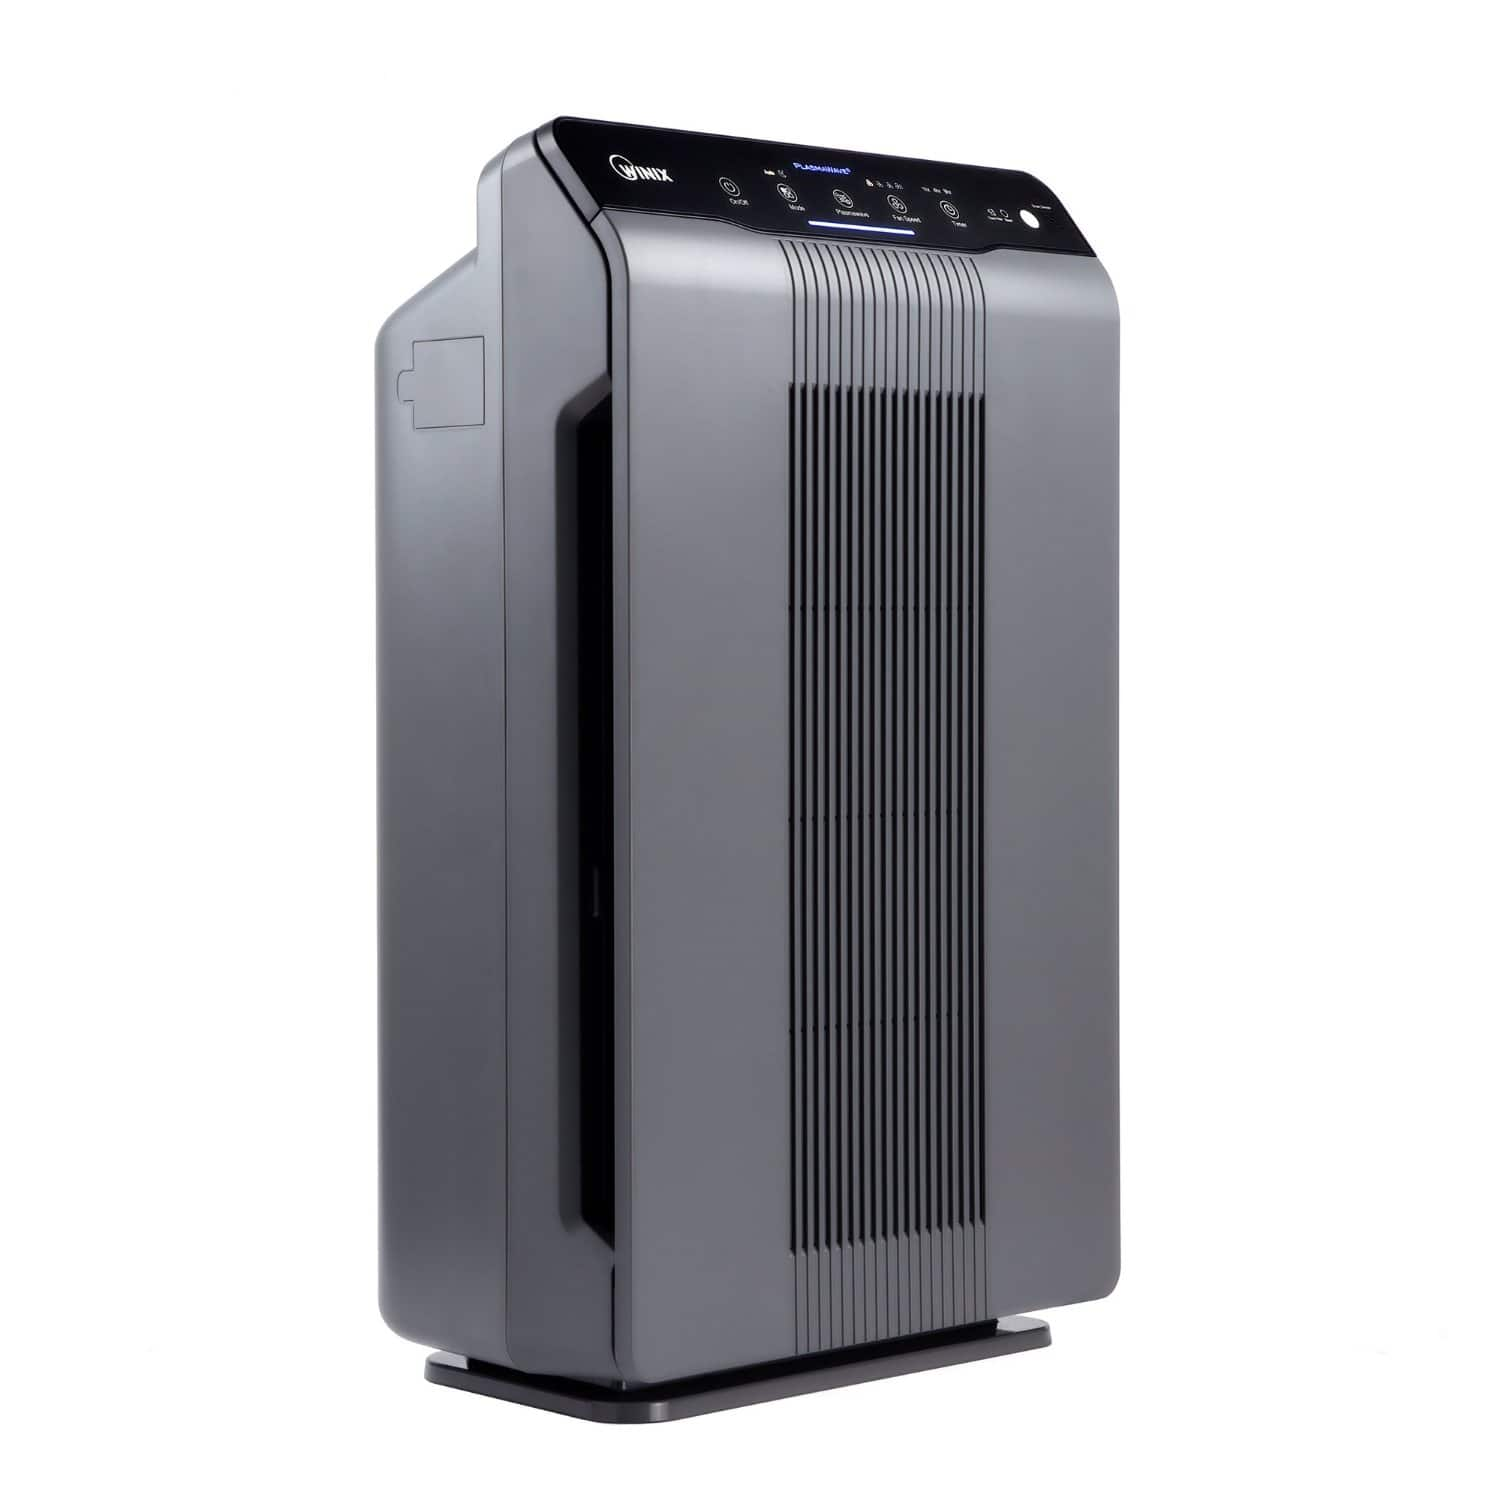 Amazon.com: Winix 5300-2 Air Purifier with True HEPA, PlasmaWave and Odor Reducing Carbon Filter - $117.88